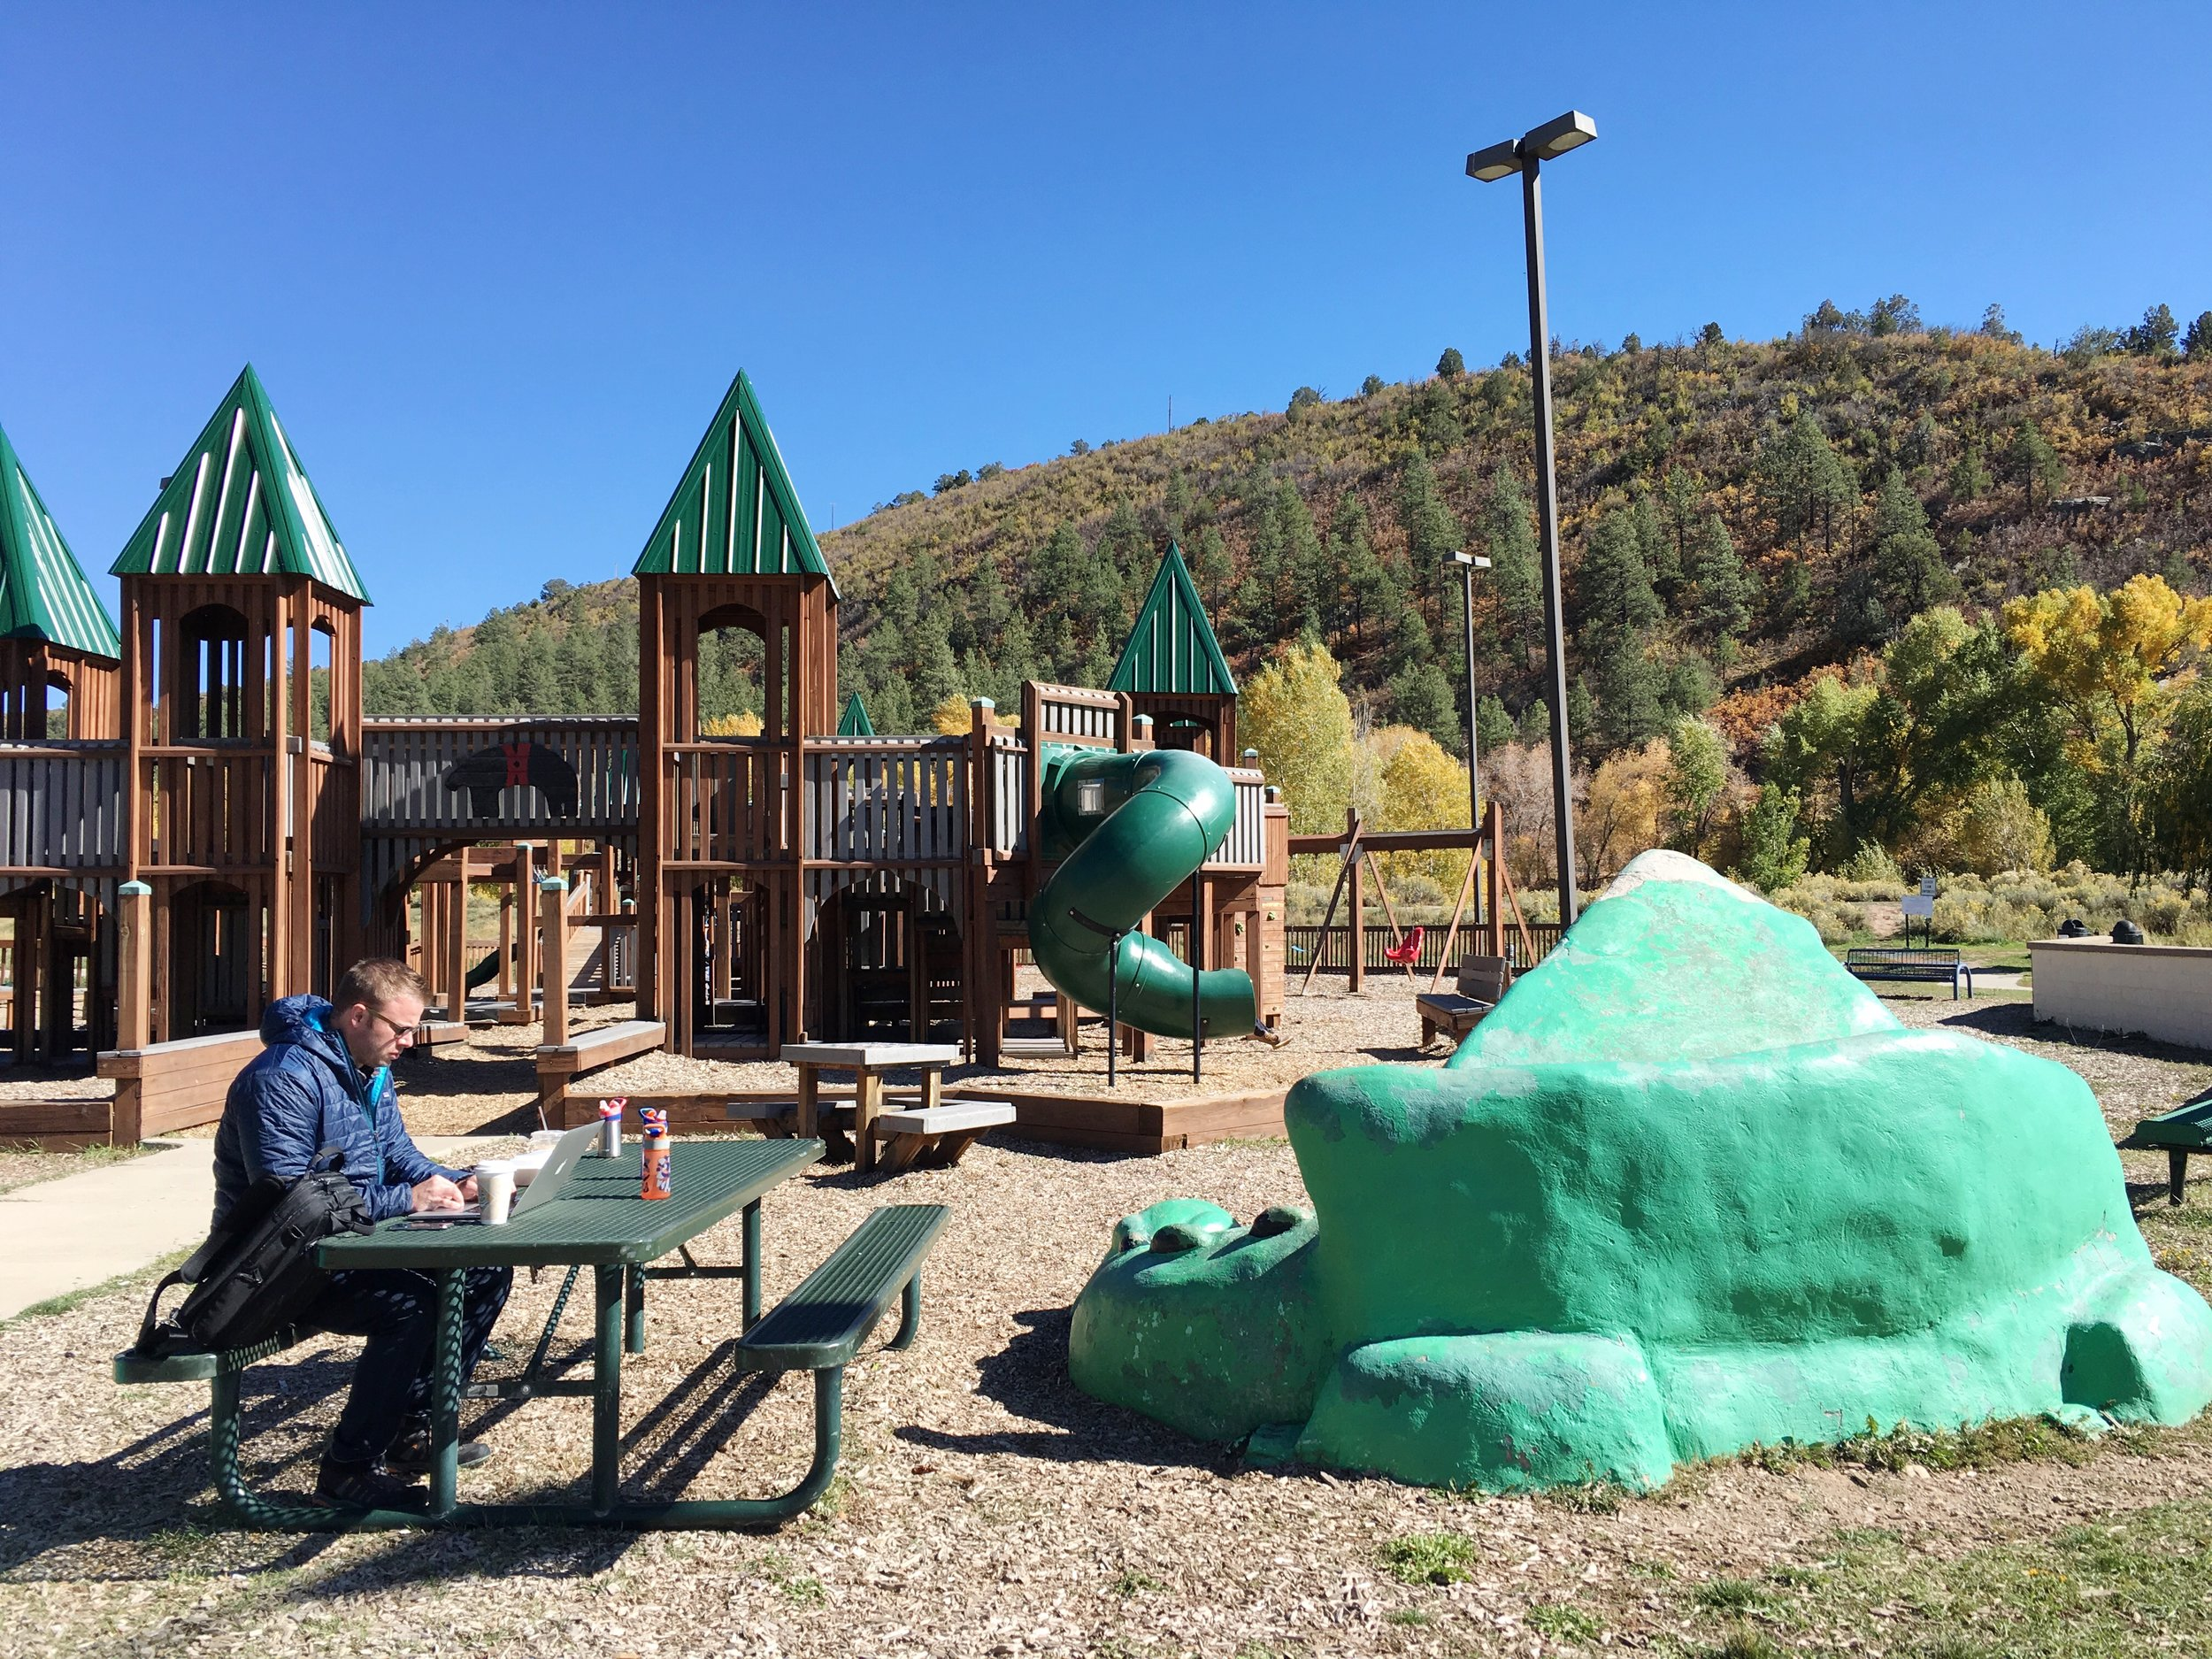 An awesome playground we discovered in Delores, Colorado.